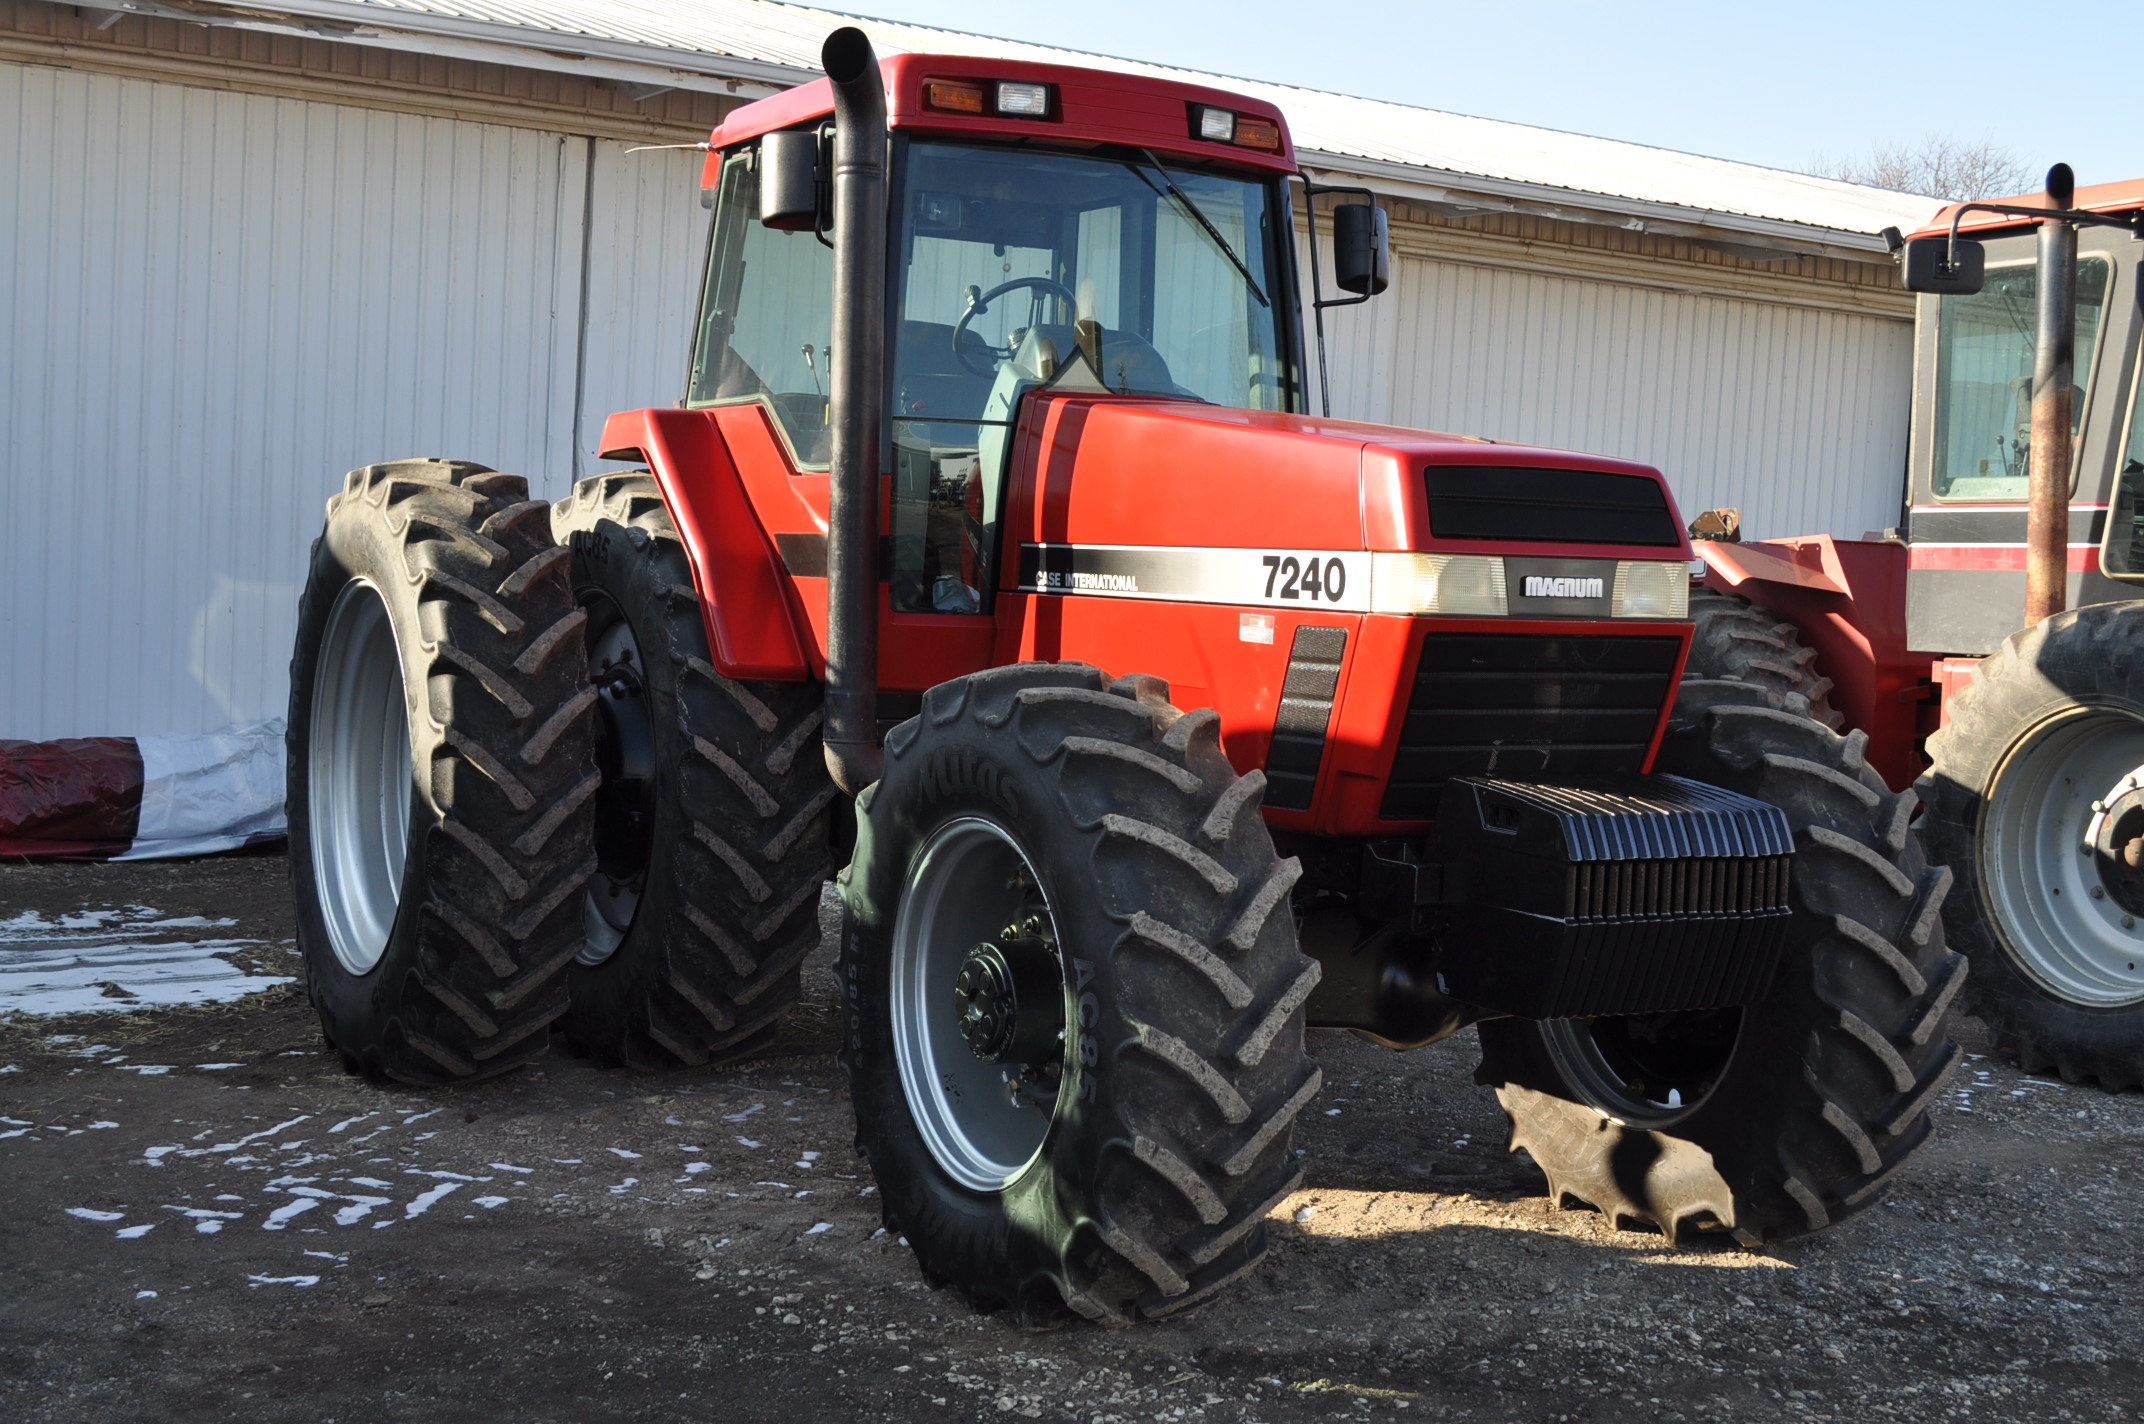 Case IH 7240 MFWD tractor, 460/85R46 rear duals, 420/85R30 front, 18 spd powershift, 4 reverse,